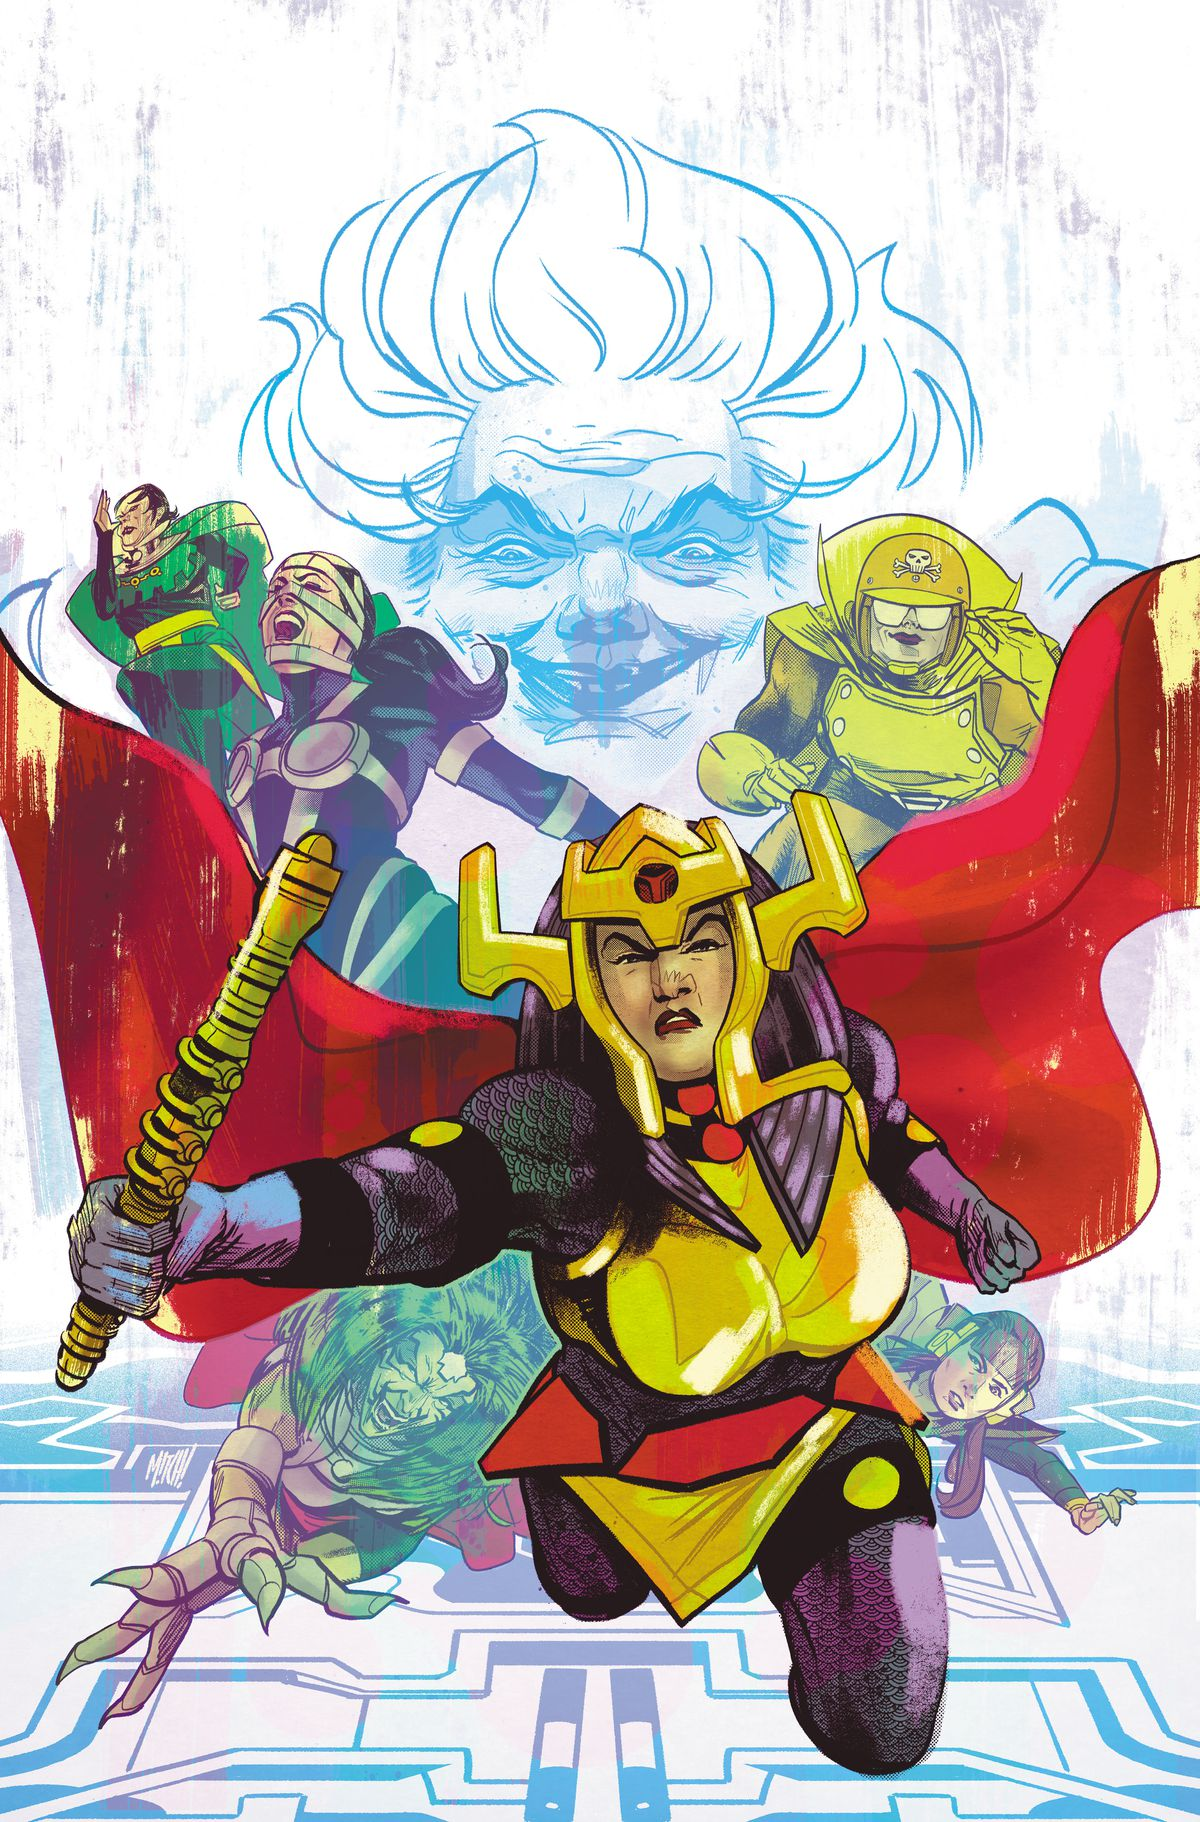 The cover of Female Furies #1, DC Comics (2019).